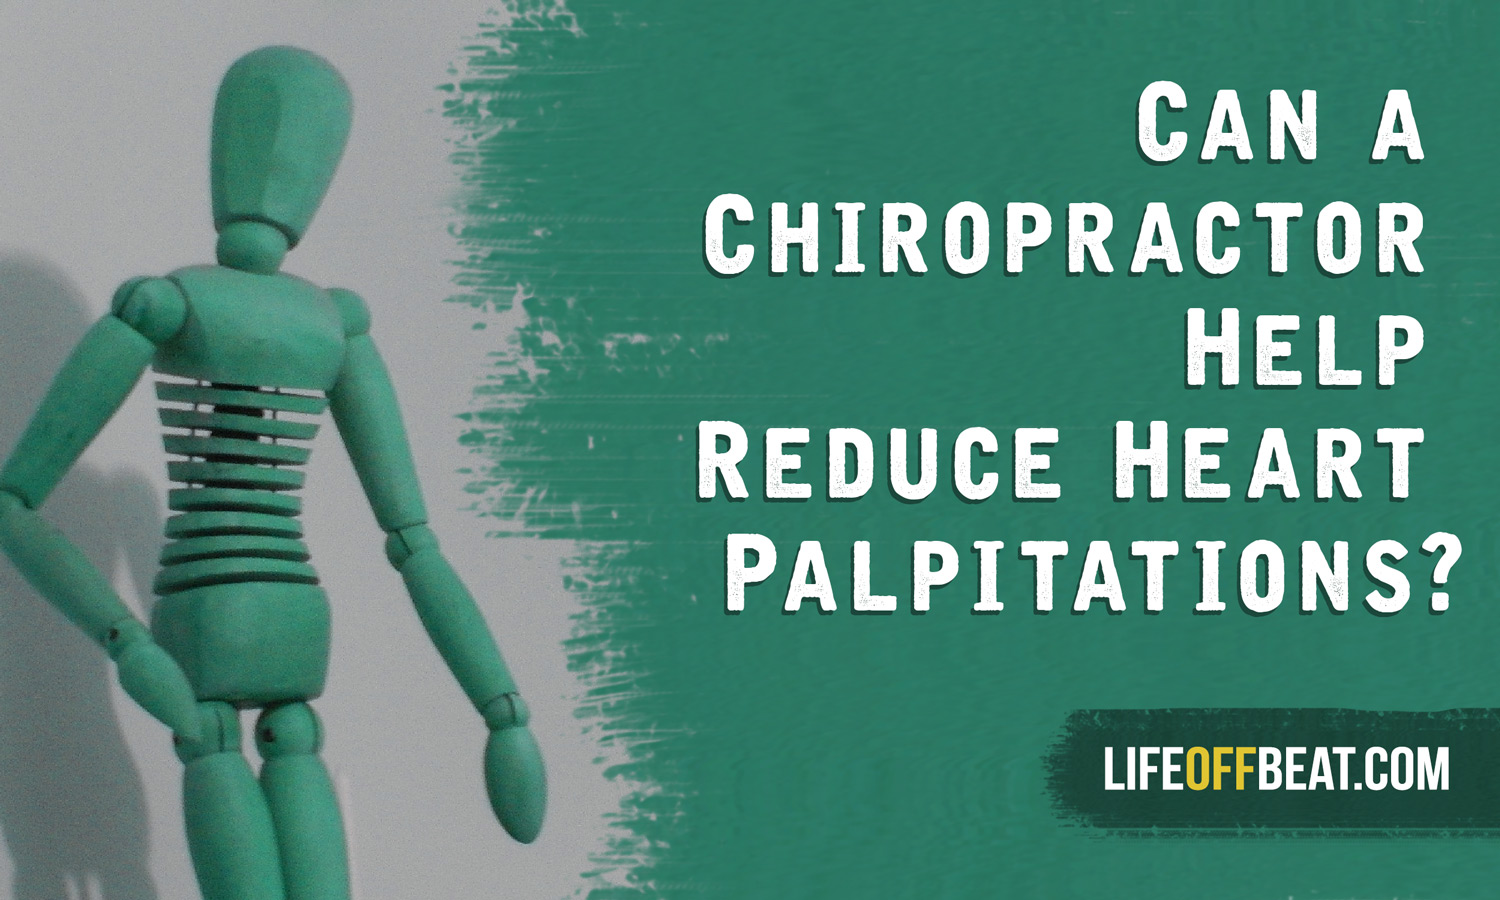 Heart Palpitations Cured by Chiropractor